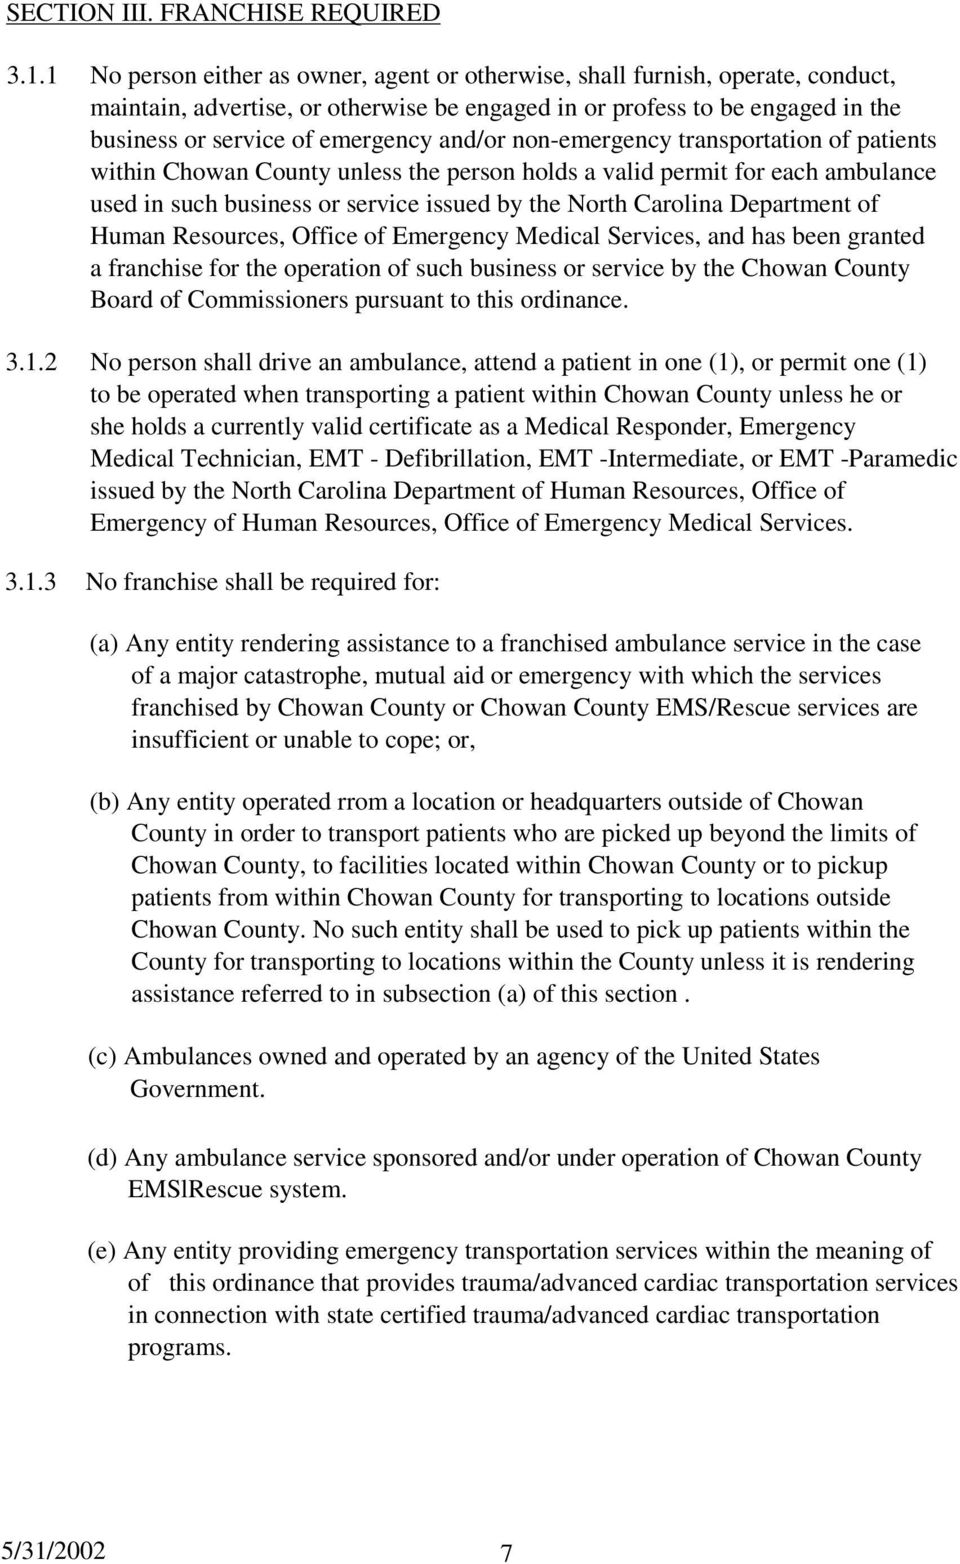 and/or non-emergency transportation of patients within Chowan County unless the person holds a valid permit for each ambulance used in such business or service issued by the North Carolina Department